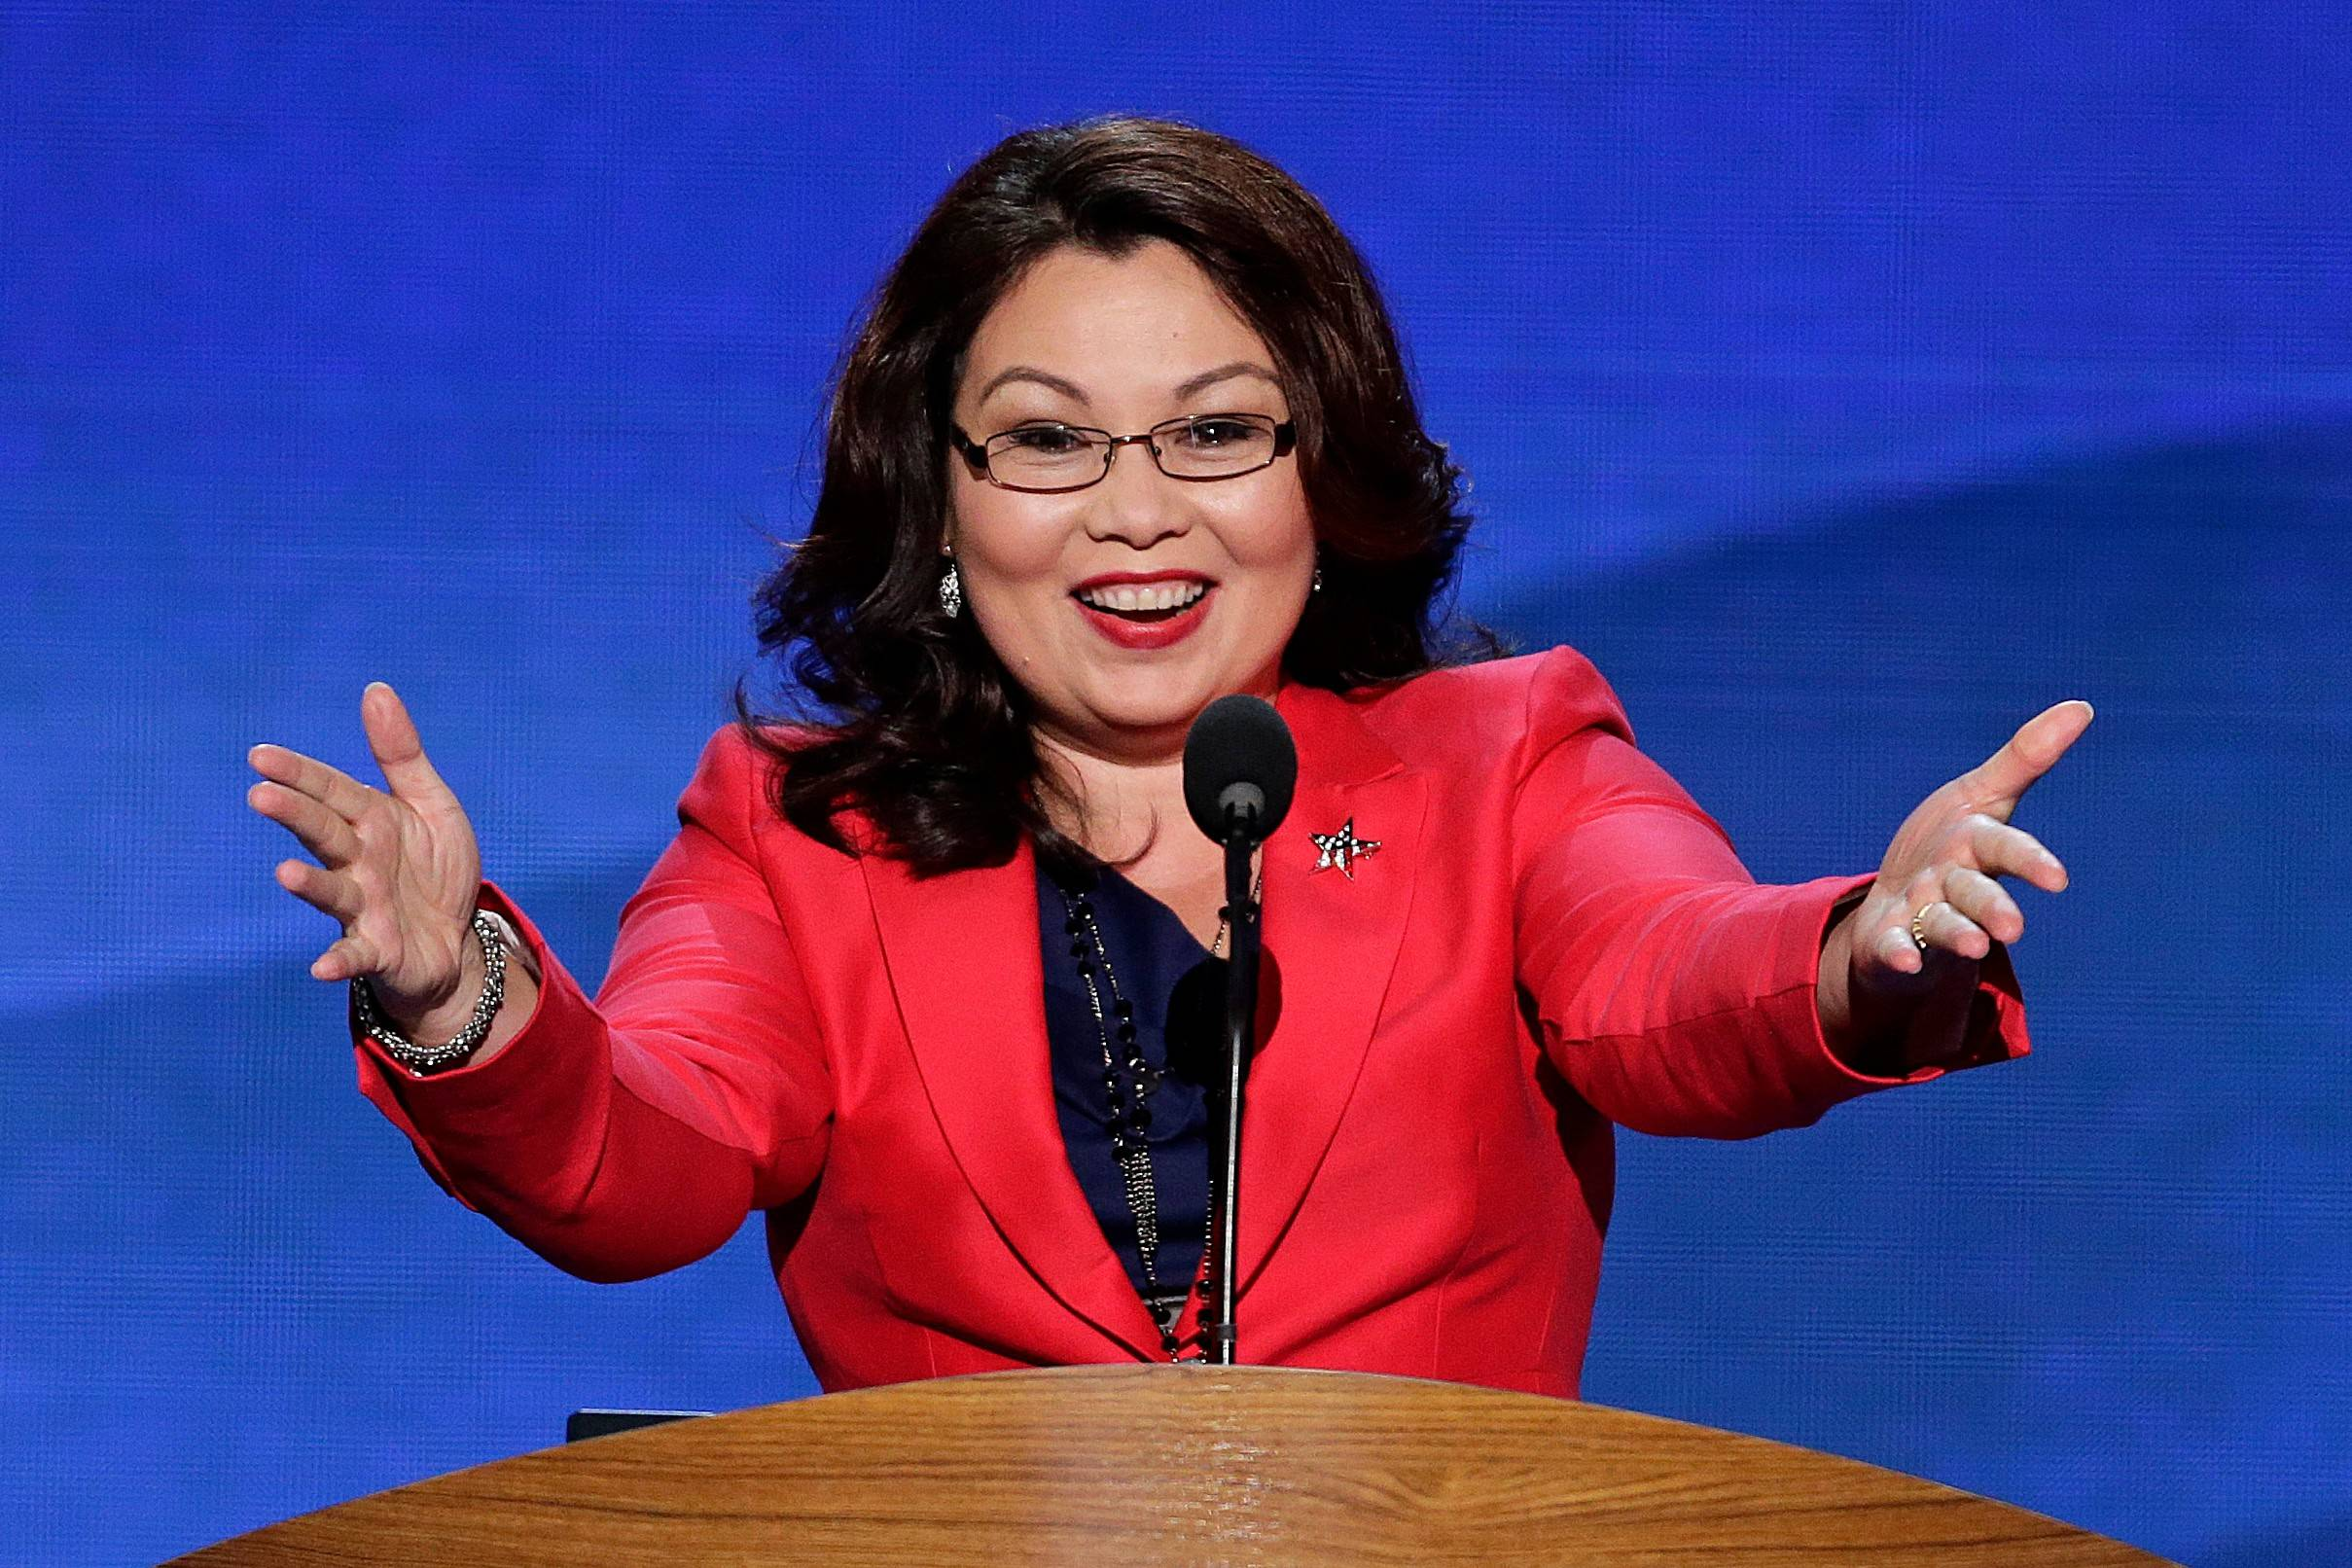 Images: Tammy Duckworth at the 2008 and 2012 Democratic National Conventions